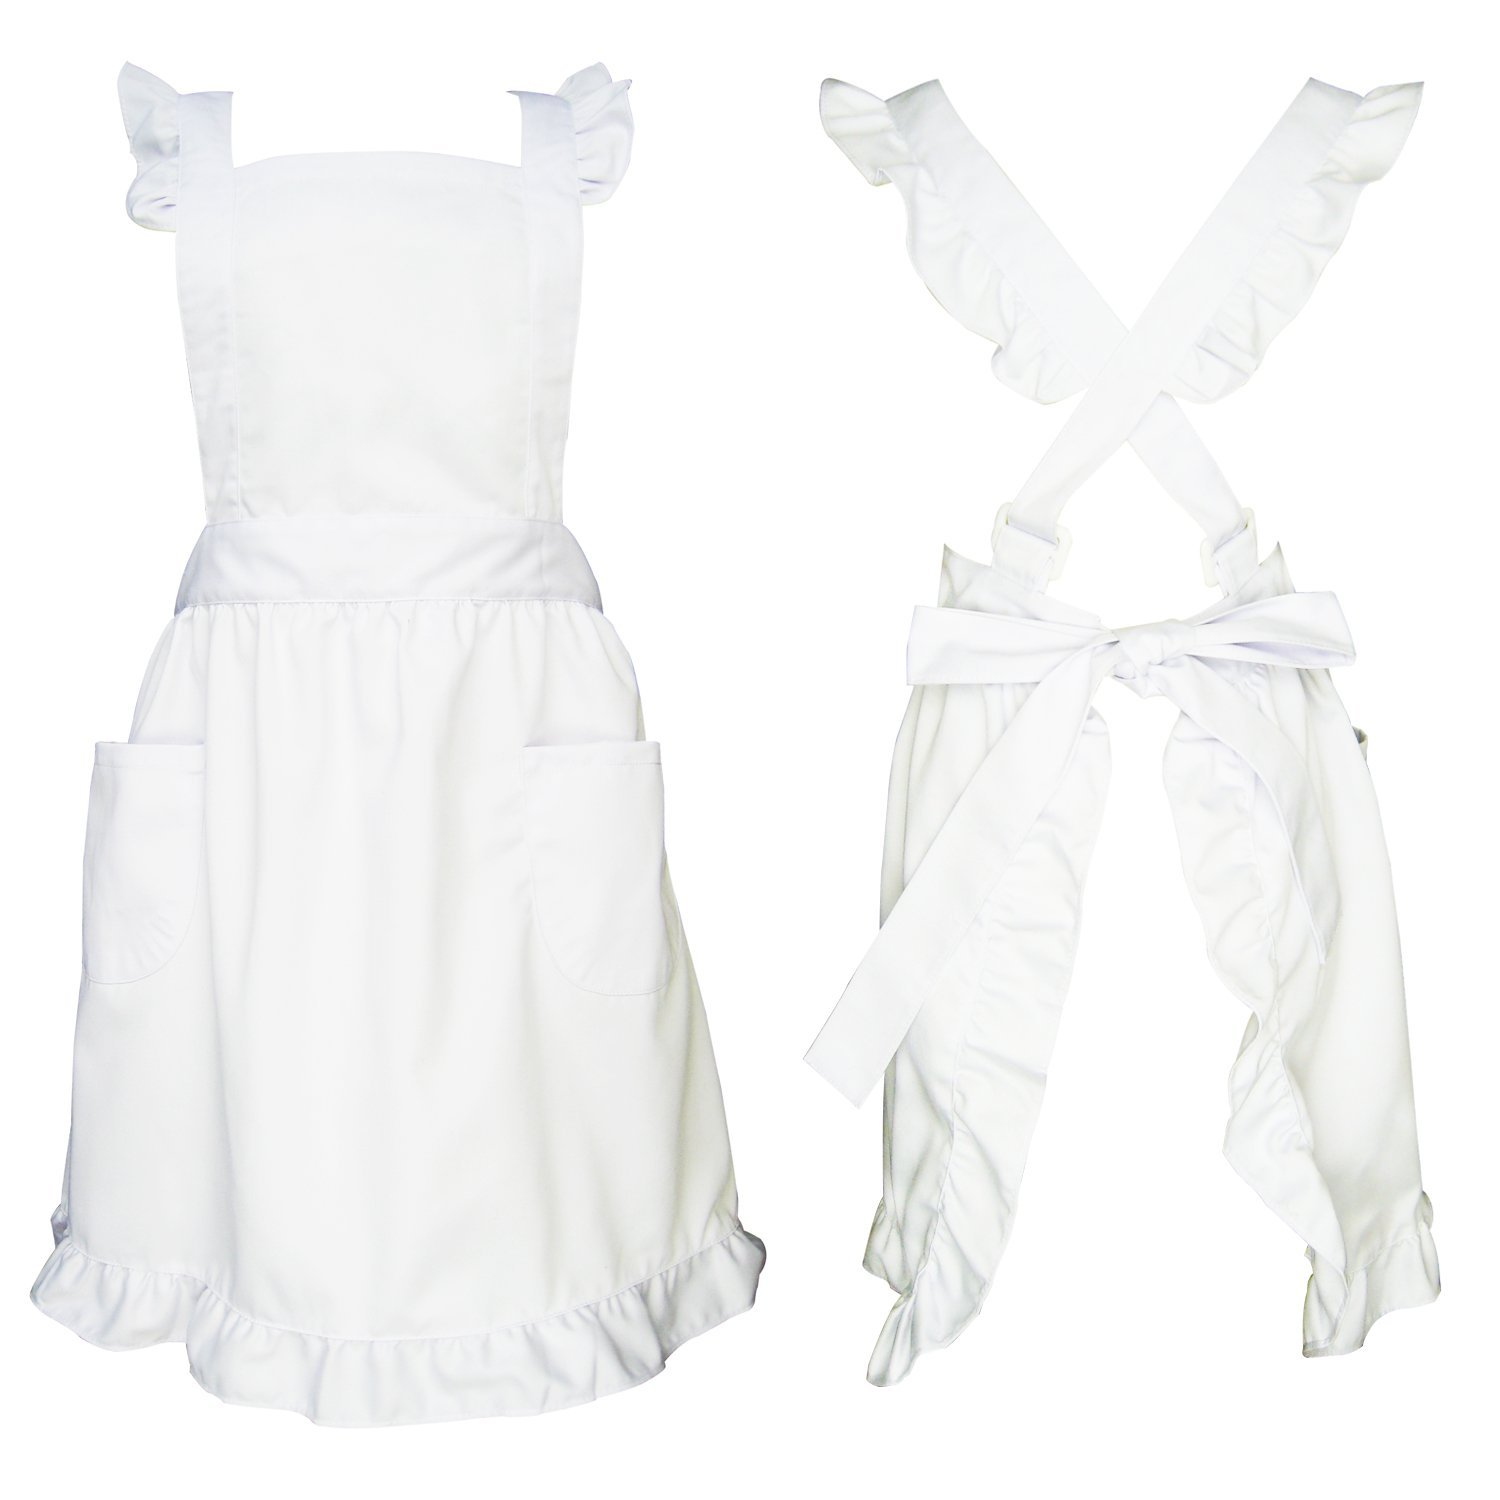 Premium Maid Costume with Ruffle Outline, Retro Straps Adjustable Fit Frilly Bib Apron With Two Pockets For Women Cosplay Cooking Baking Cleaning,One Size Fits All(White)